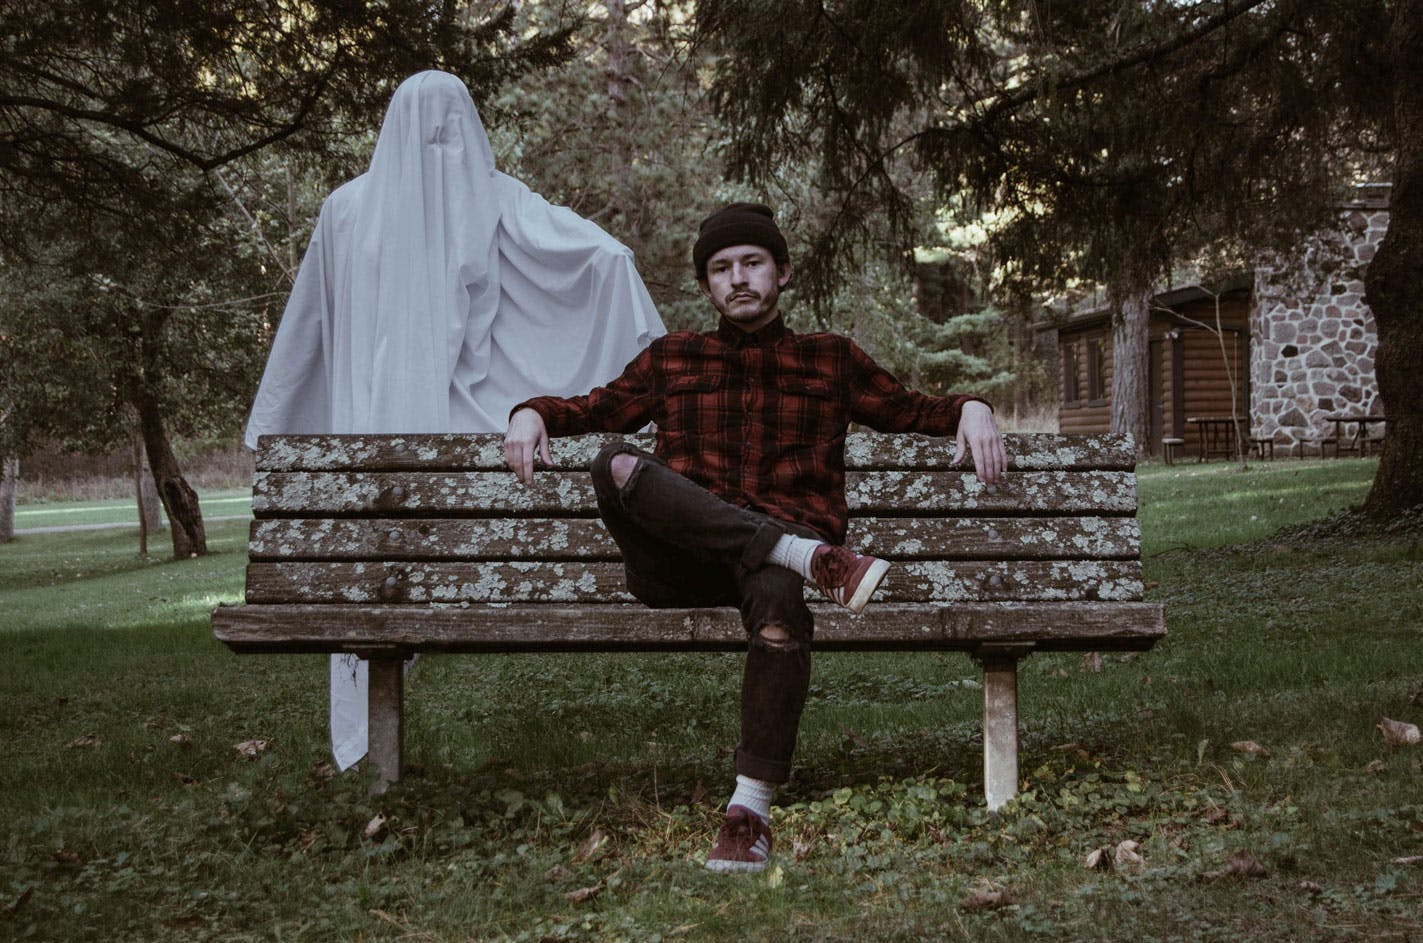 hipster man sitting on a bench in a red plaid shirt with a sheet ghost lingering behind him